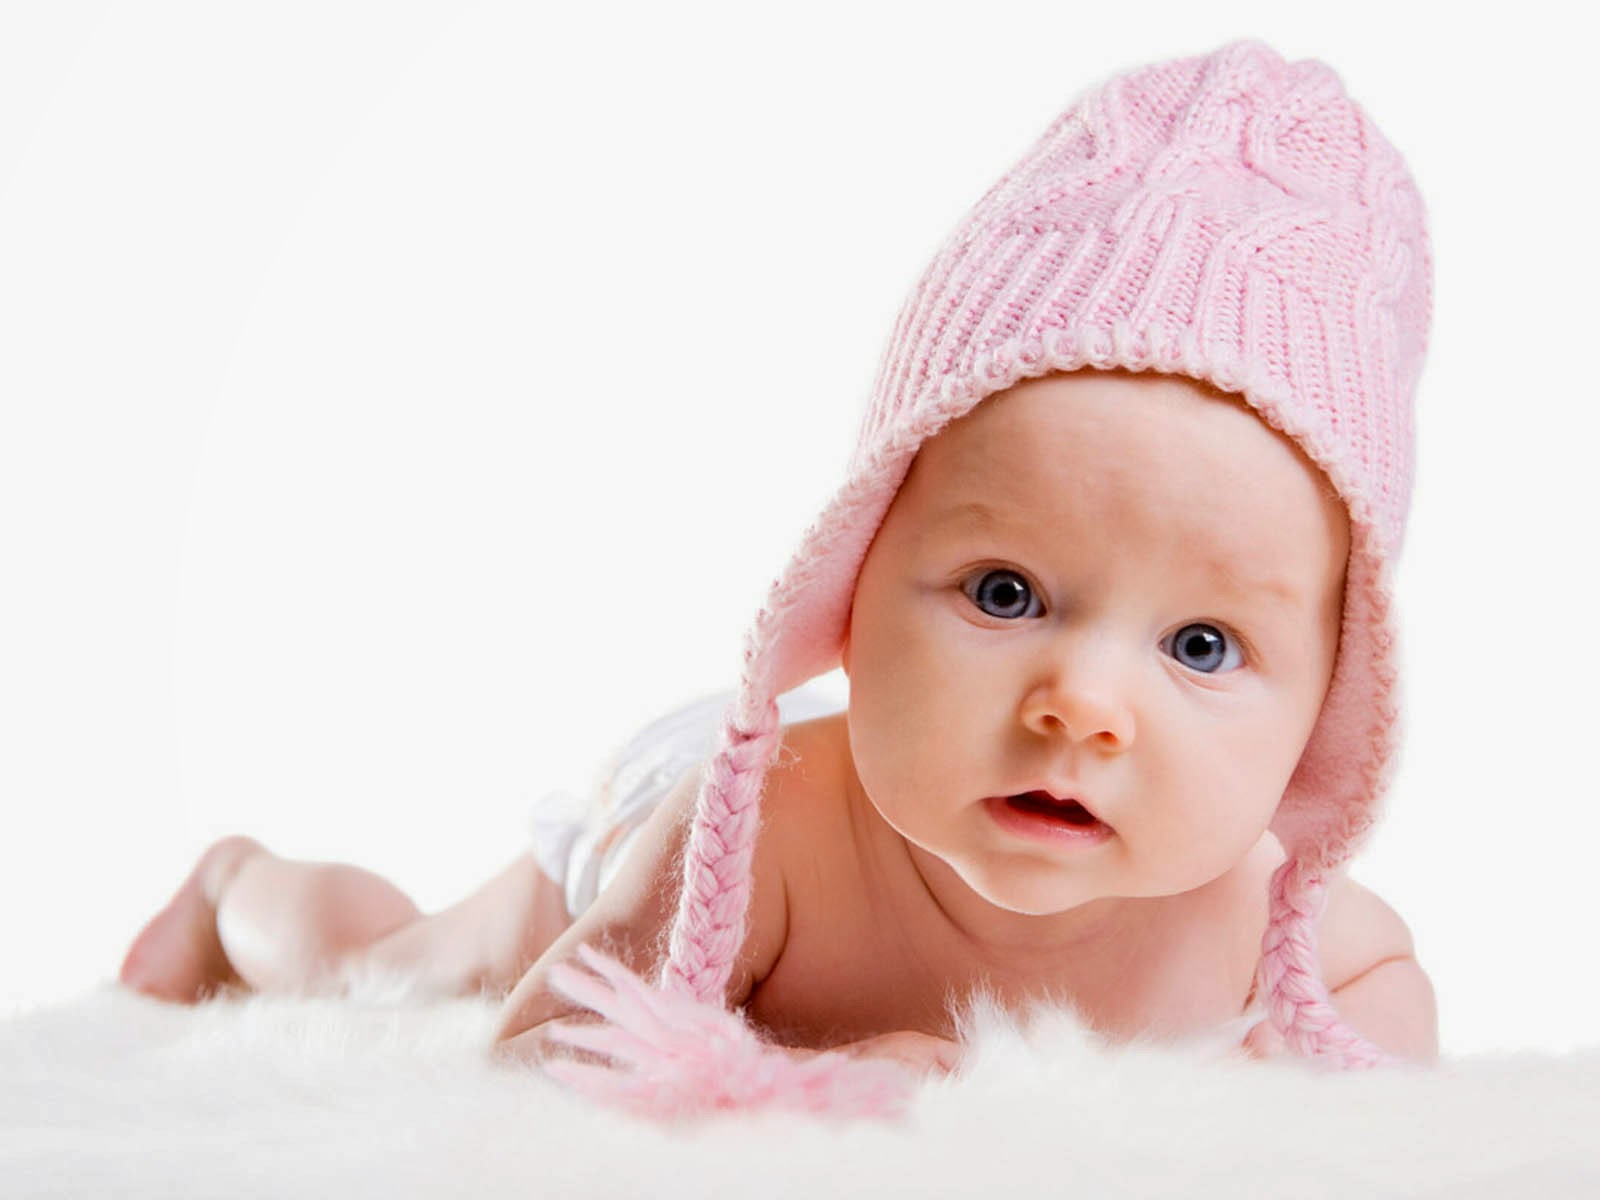 Myhdpictures2014spot cute baby hd photos free download cute baby hd photos free download new born baby wallpapers images photos pictures and backgrounds for freebabies hd picturesbabies wallpapers voltagebd Choice Image